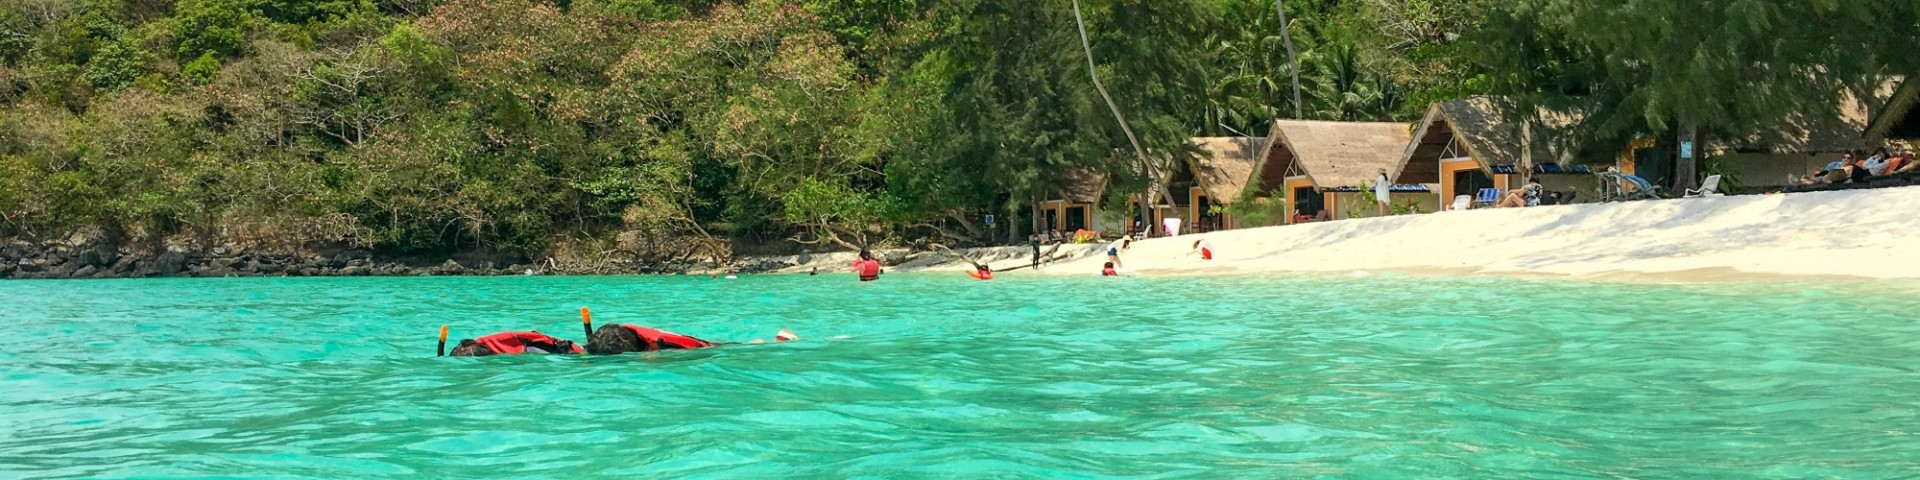 Surin Islands Snorkelling Review Seastar Ambition Earth